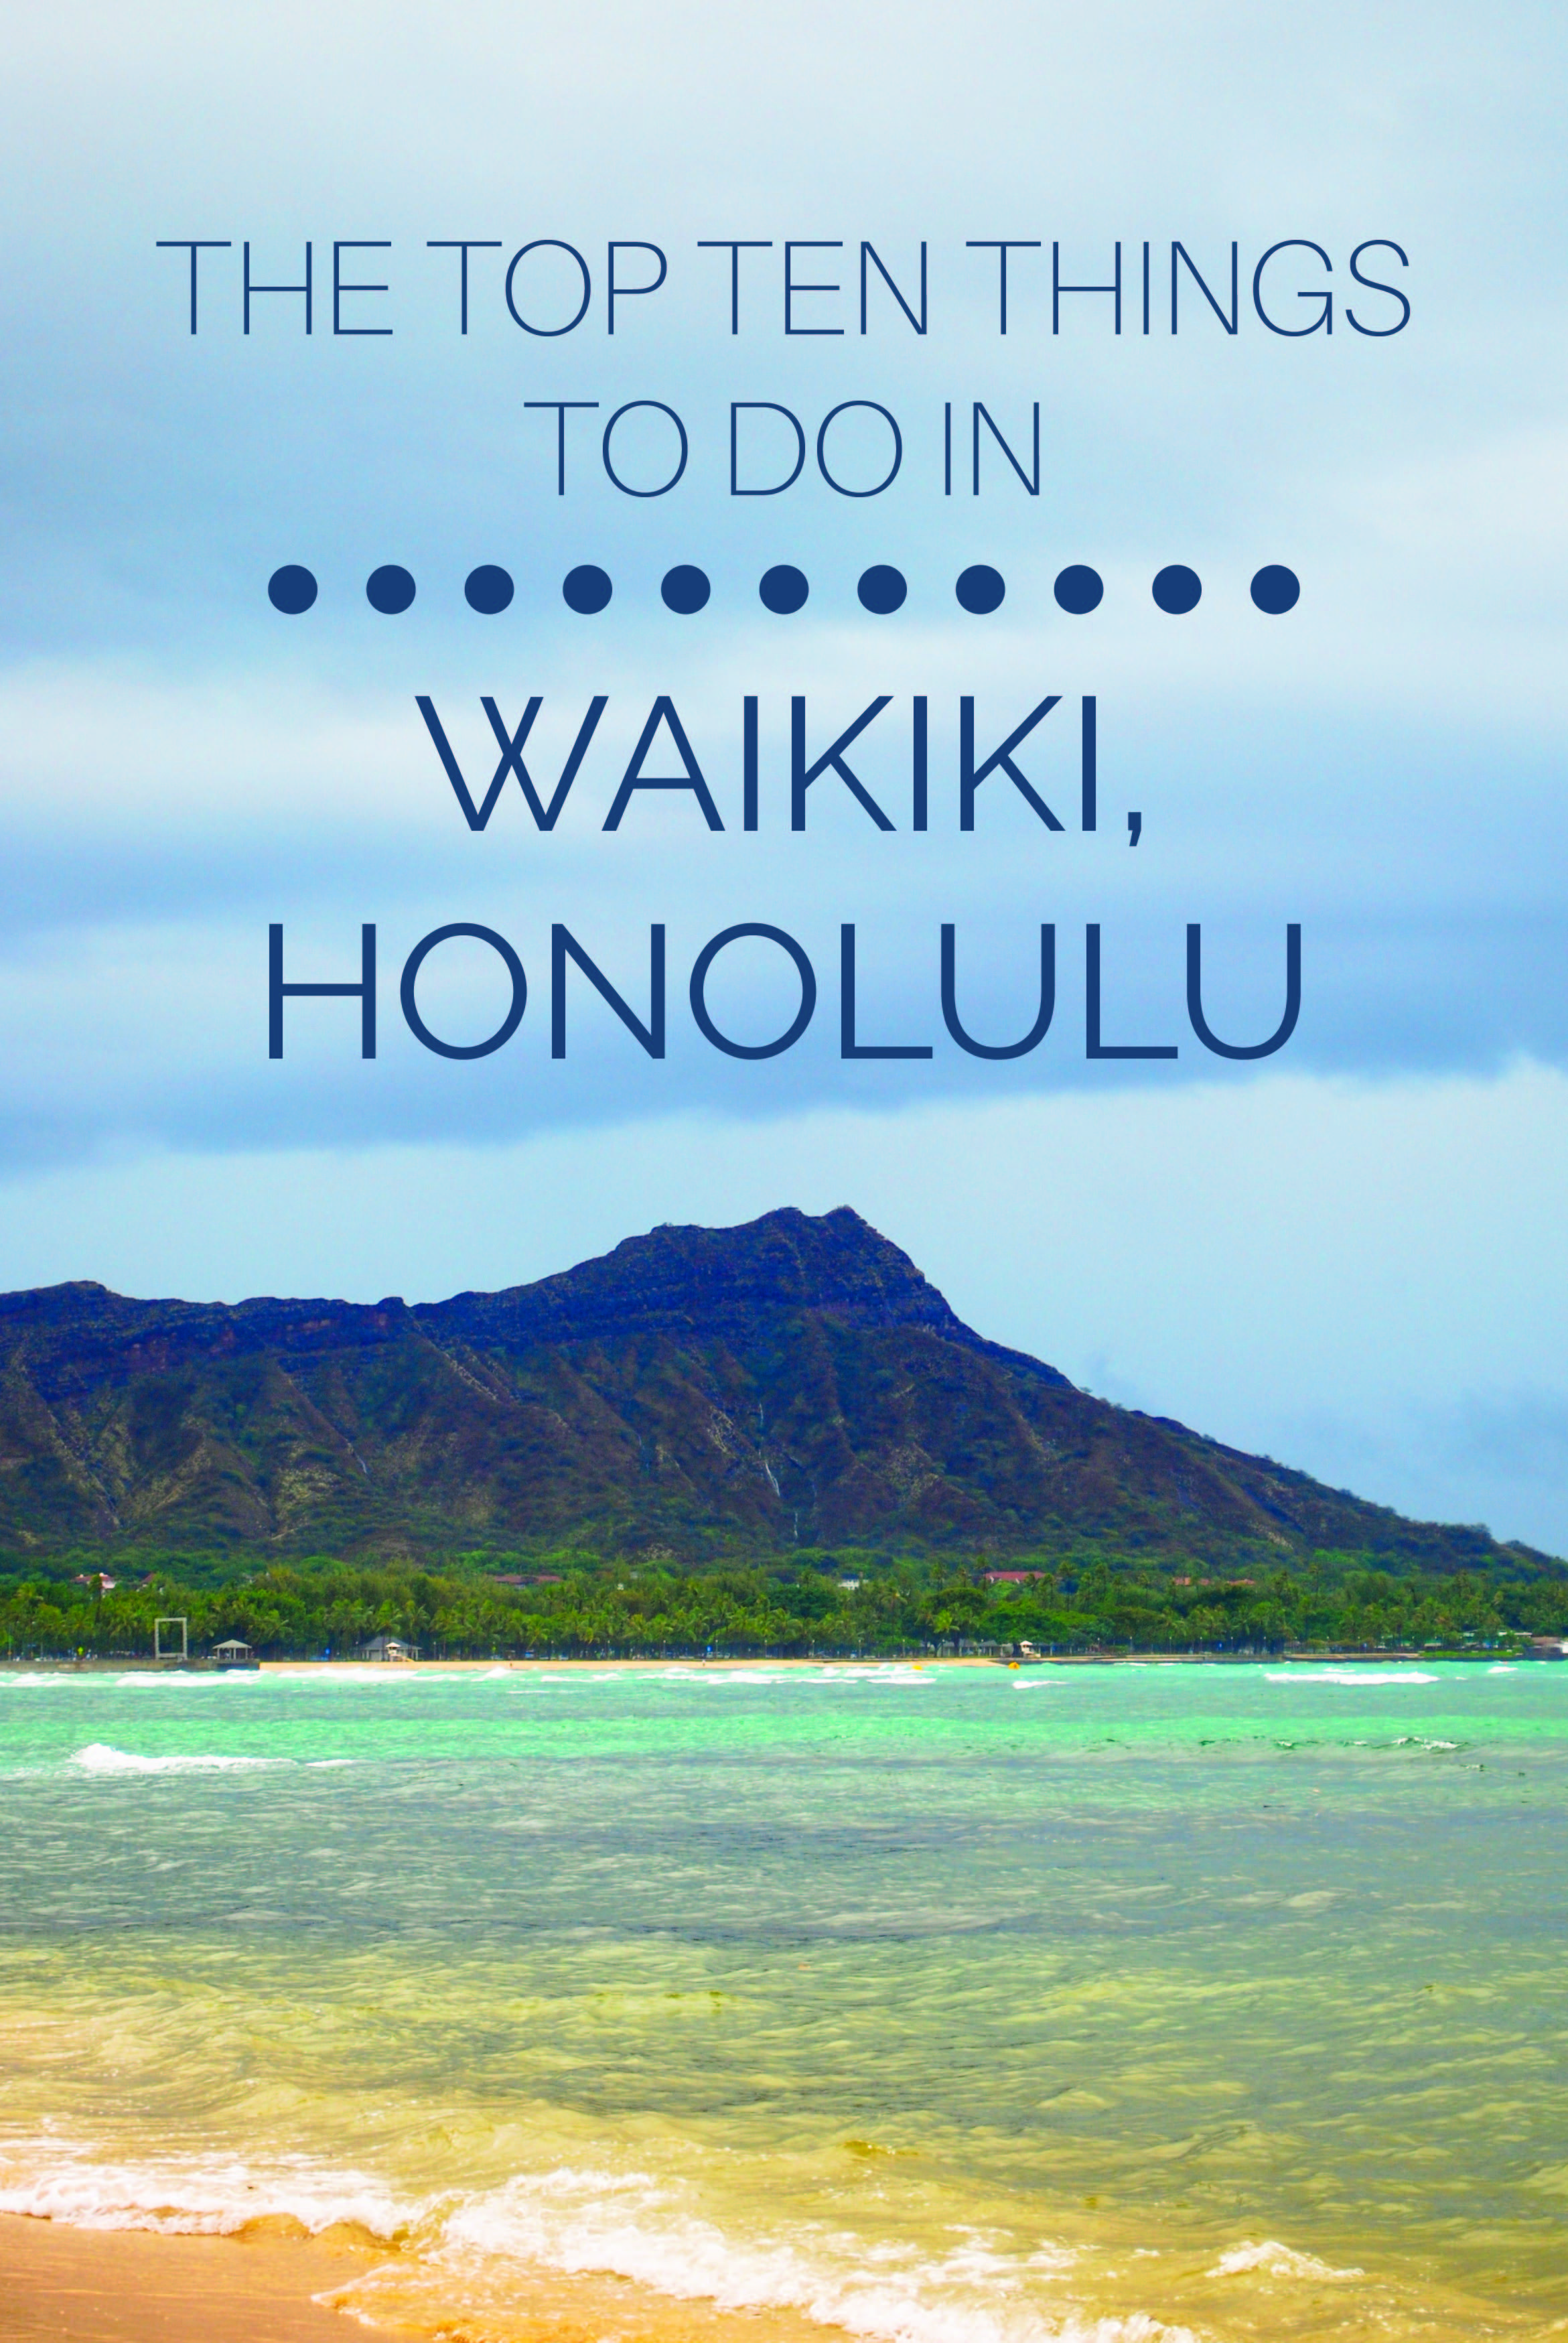 The Top Things To Do In Waikiki Honolulu Hawaii Oahu And - 10 things to see and do in honolulu